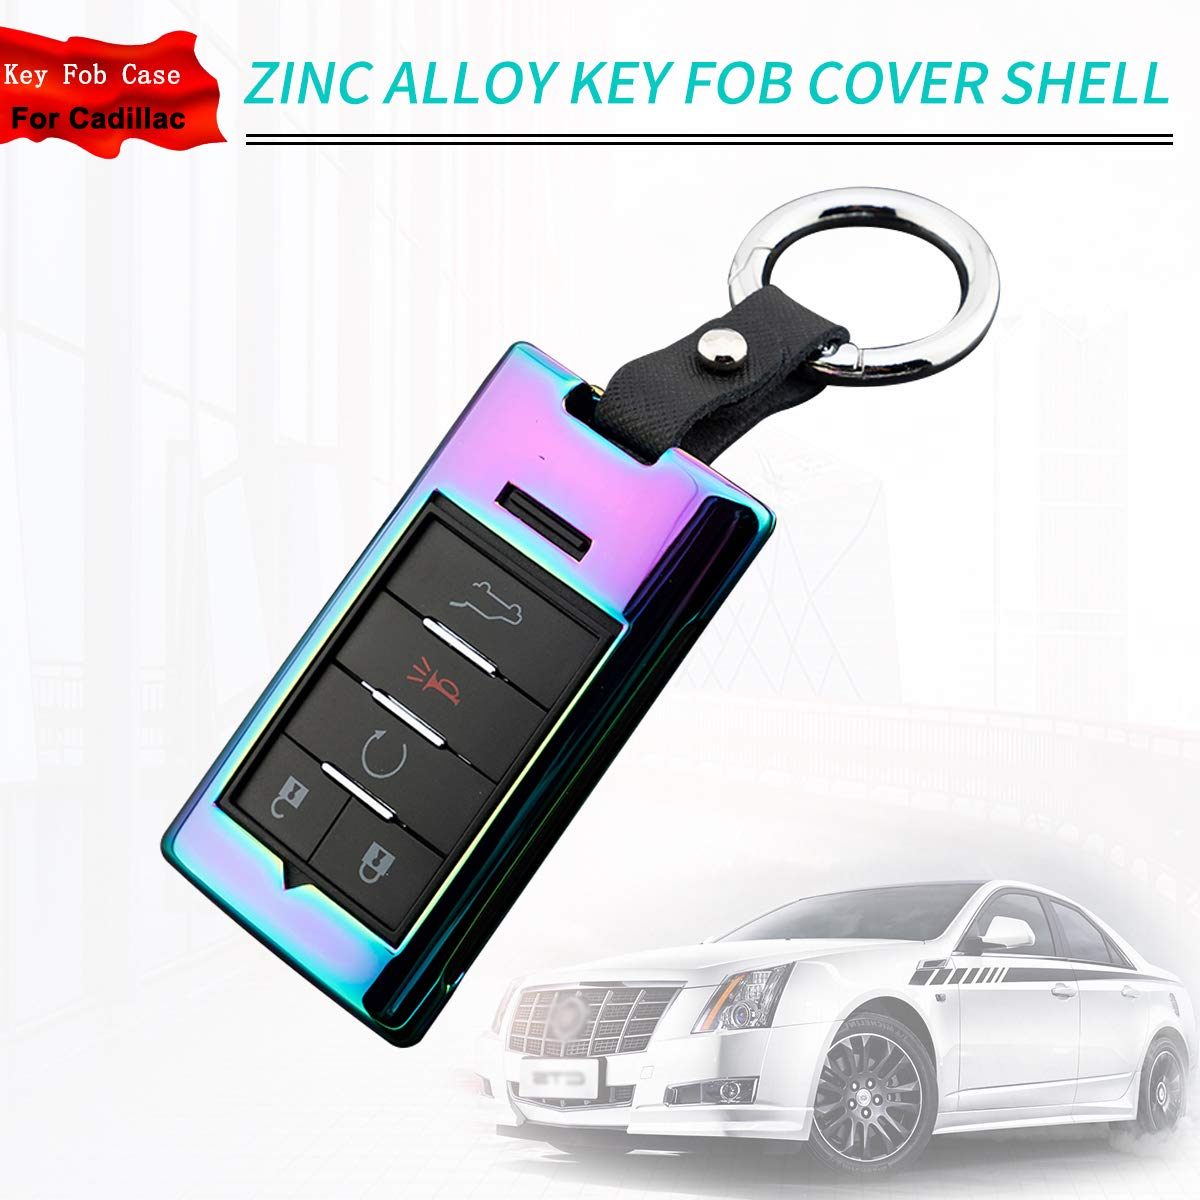 Universal Car Key protector cover for Cadillac DTS CTS STS XTS Escalade Blue Zinc Alloy Key Fob Cover with Key Chain for Chevrolet C7 Corvette 4 5 6 button Remote Smart Key Fob Case for Cadillac